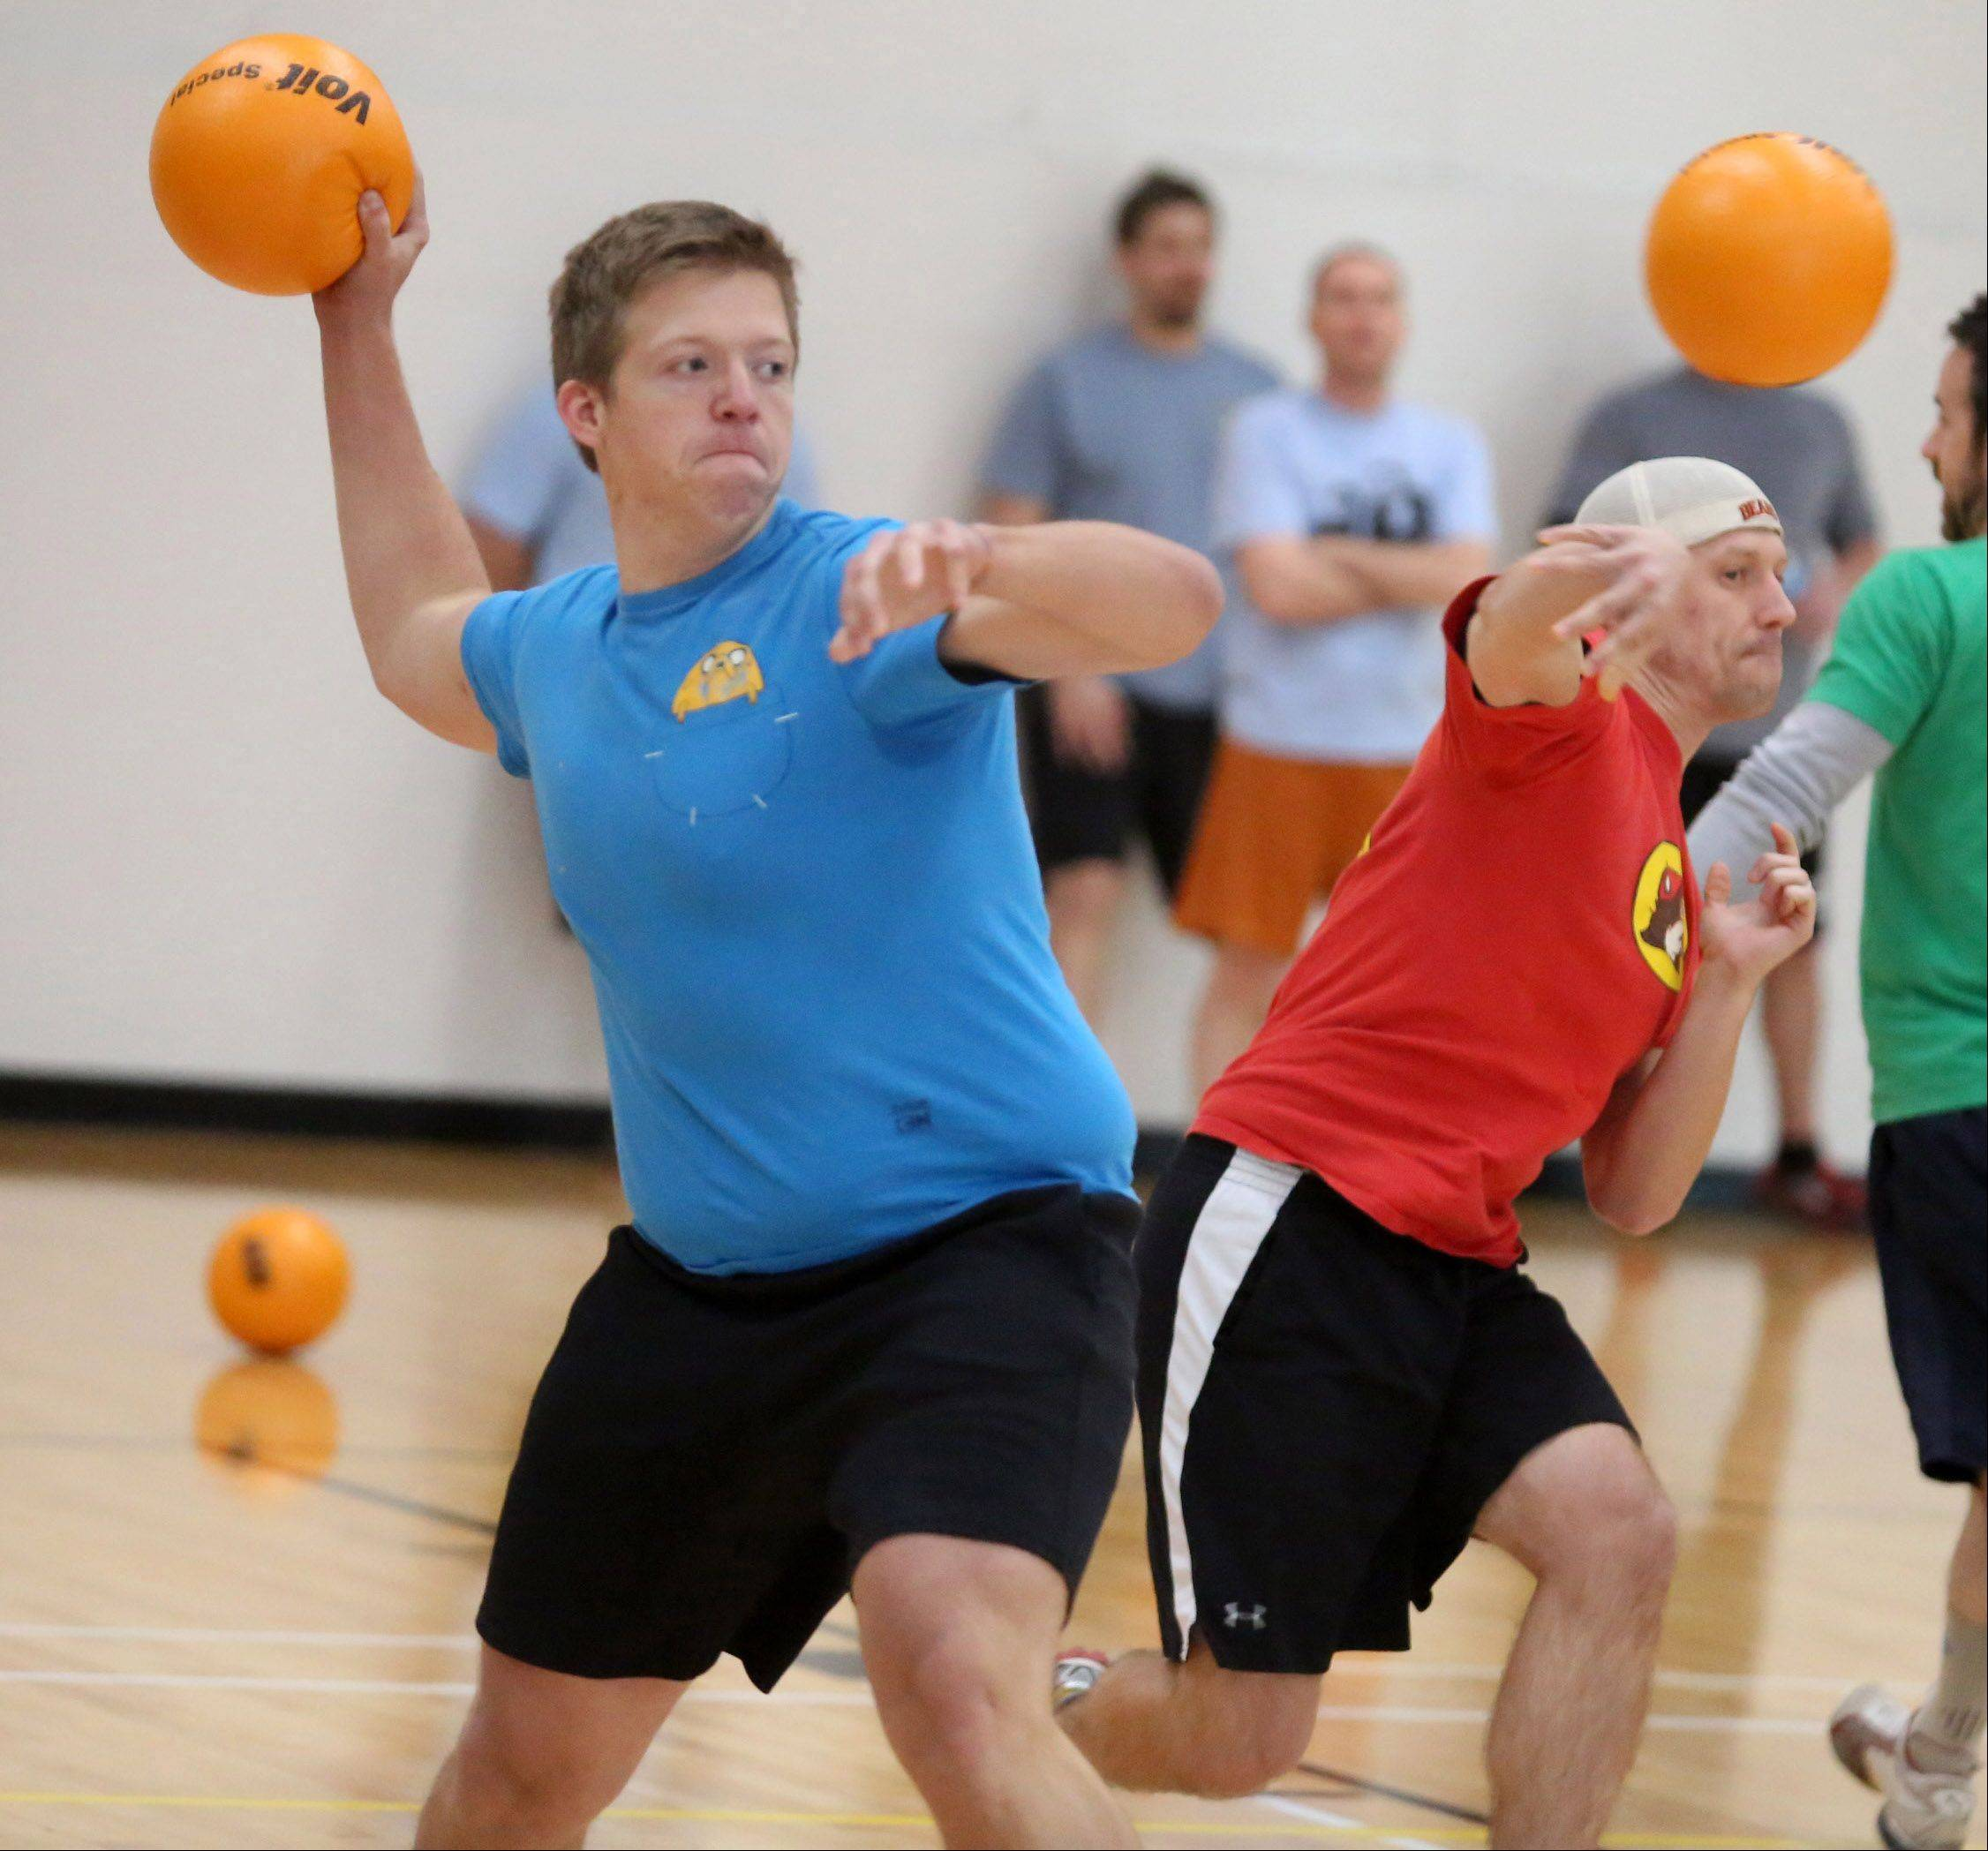 George LeClaire/gleclaire@dailyherald.comDavid Pinkawa of Des Plaines and Greg Putra of Lisle with Out Of Shape Cobras looks for members of the team they are competing against to throw at during adult dodgeball championships Saturday in Schaumburg.